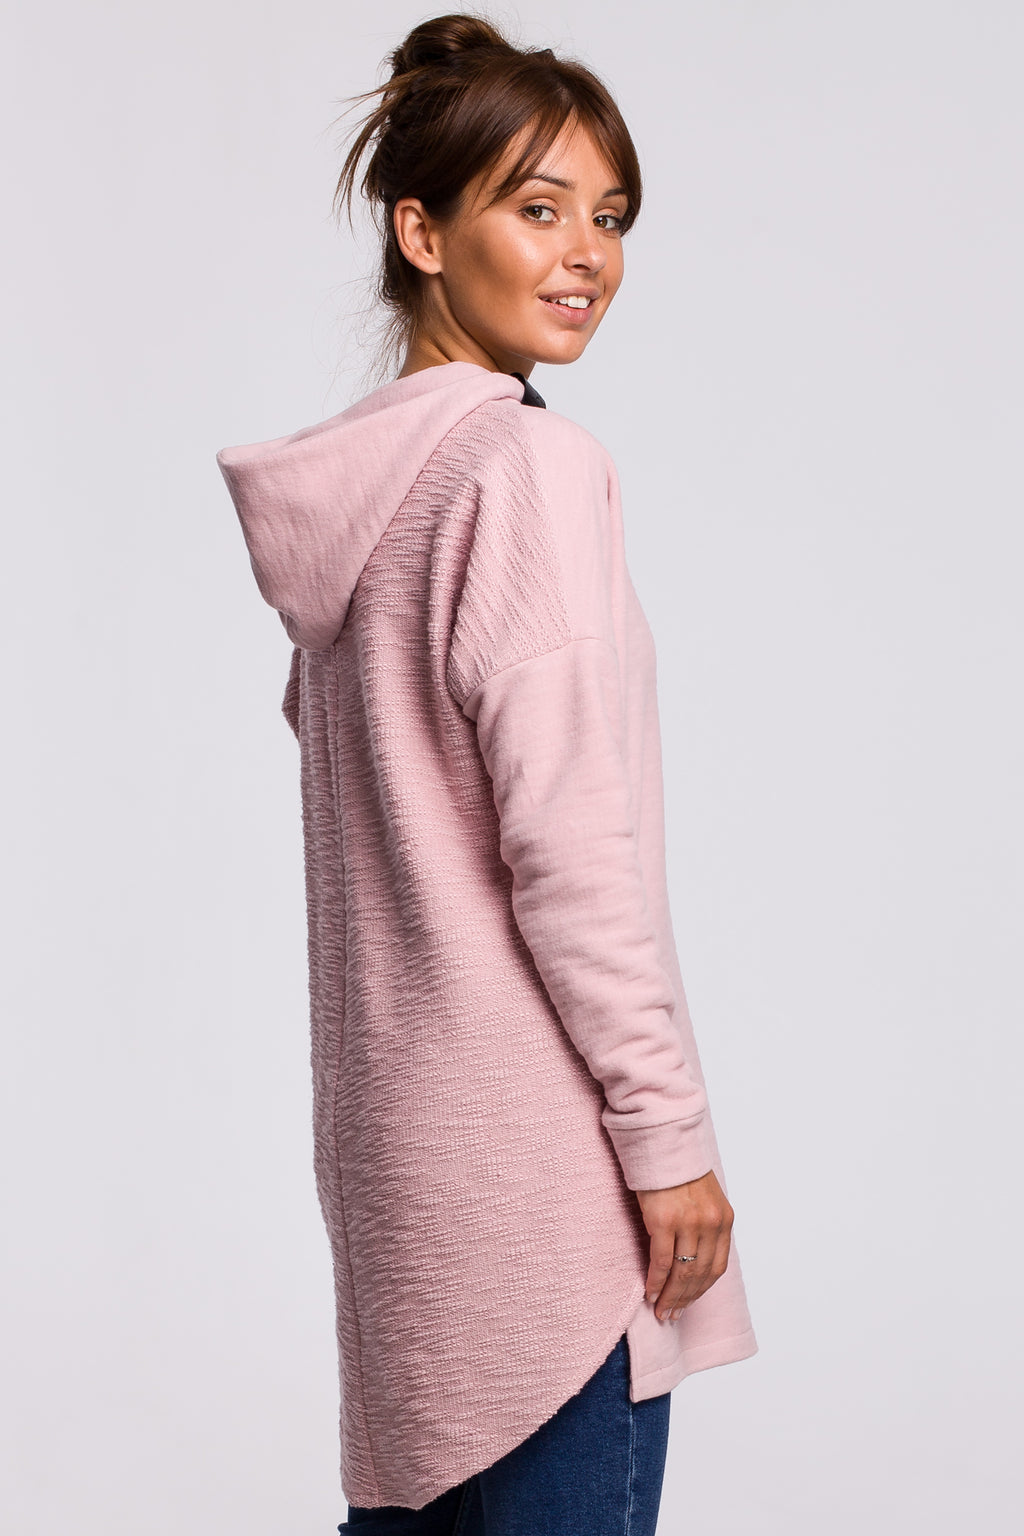 Double Textured Powder Pink Cotton Long Sweatshirt With A Hood - So Chic Boutique